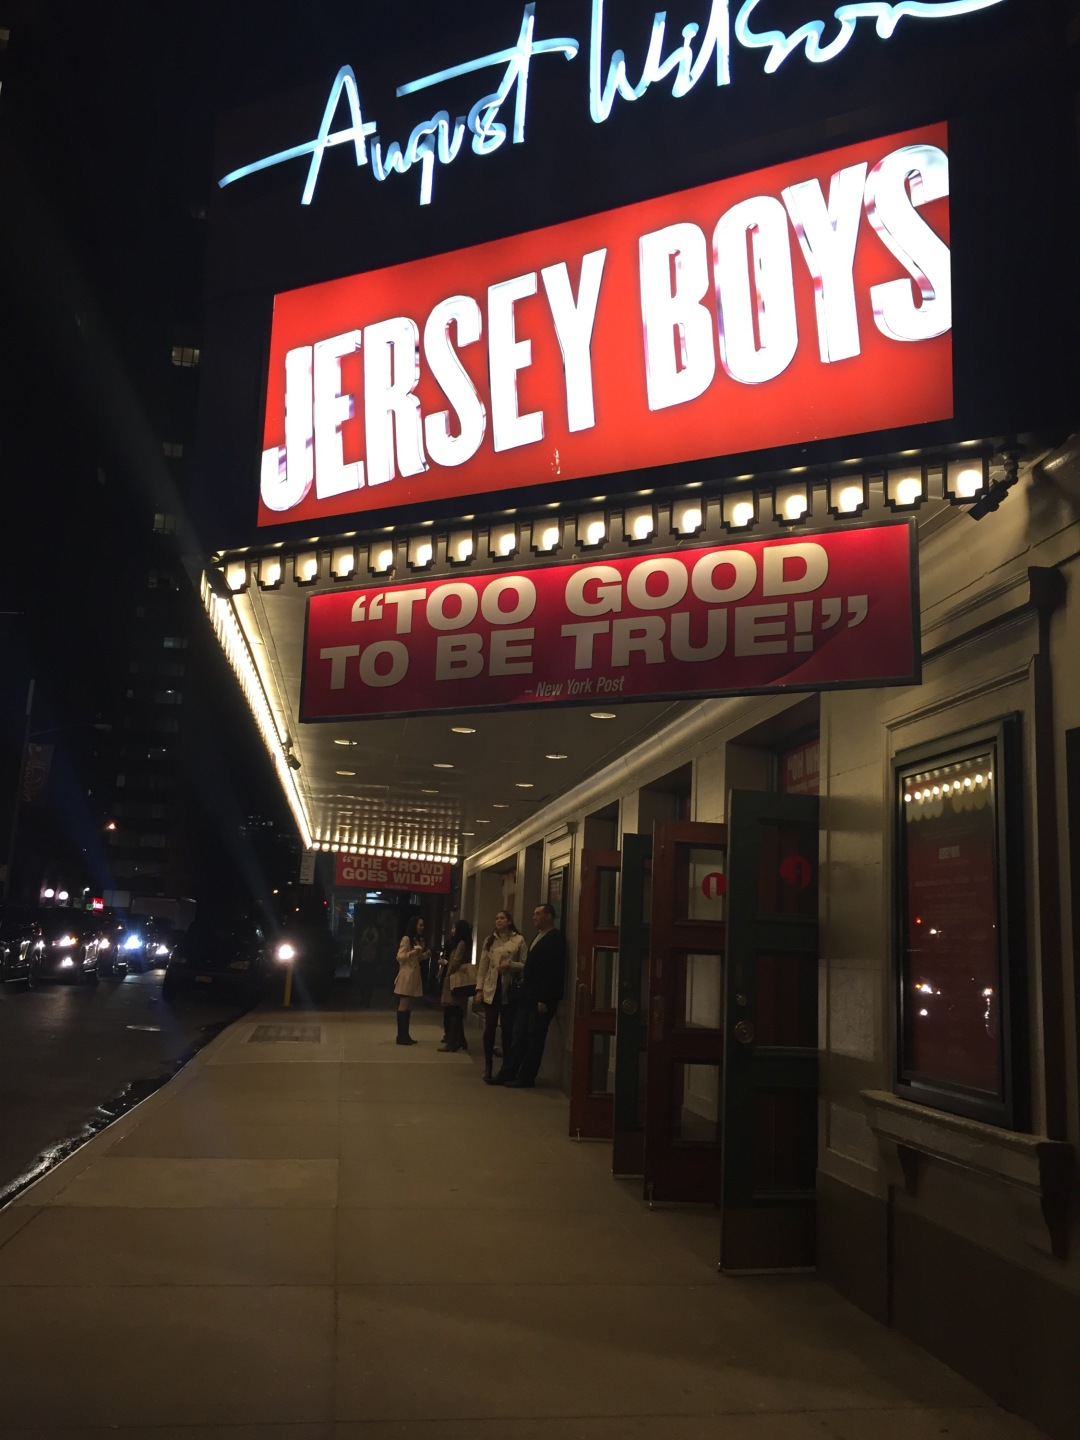 see Jersey Boys on your cheap trip to NYC